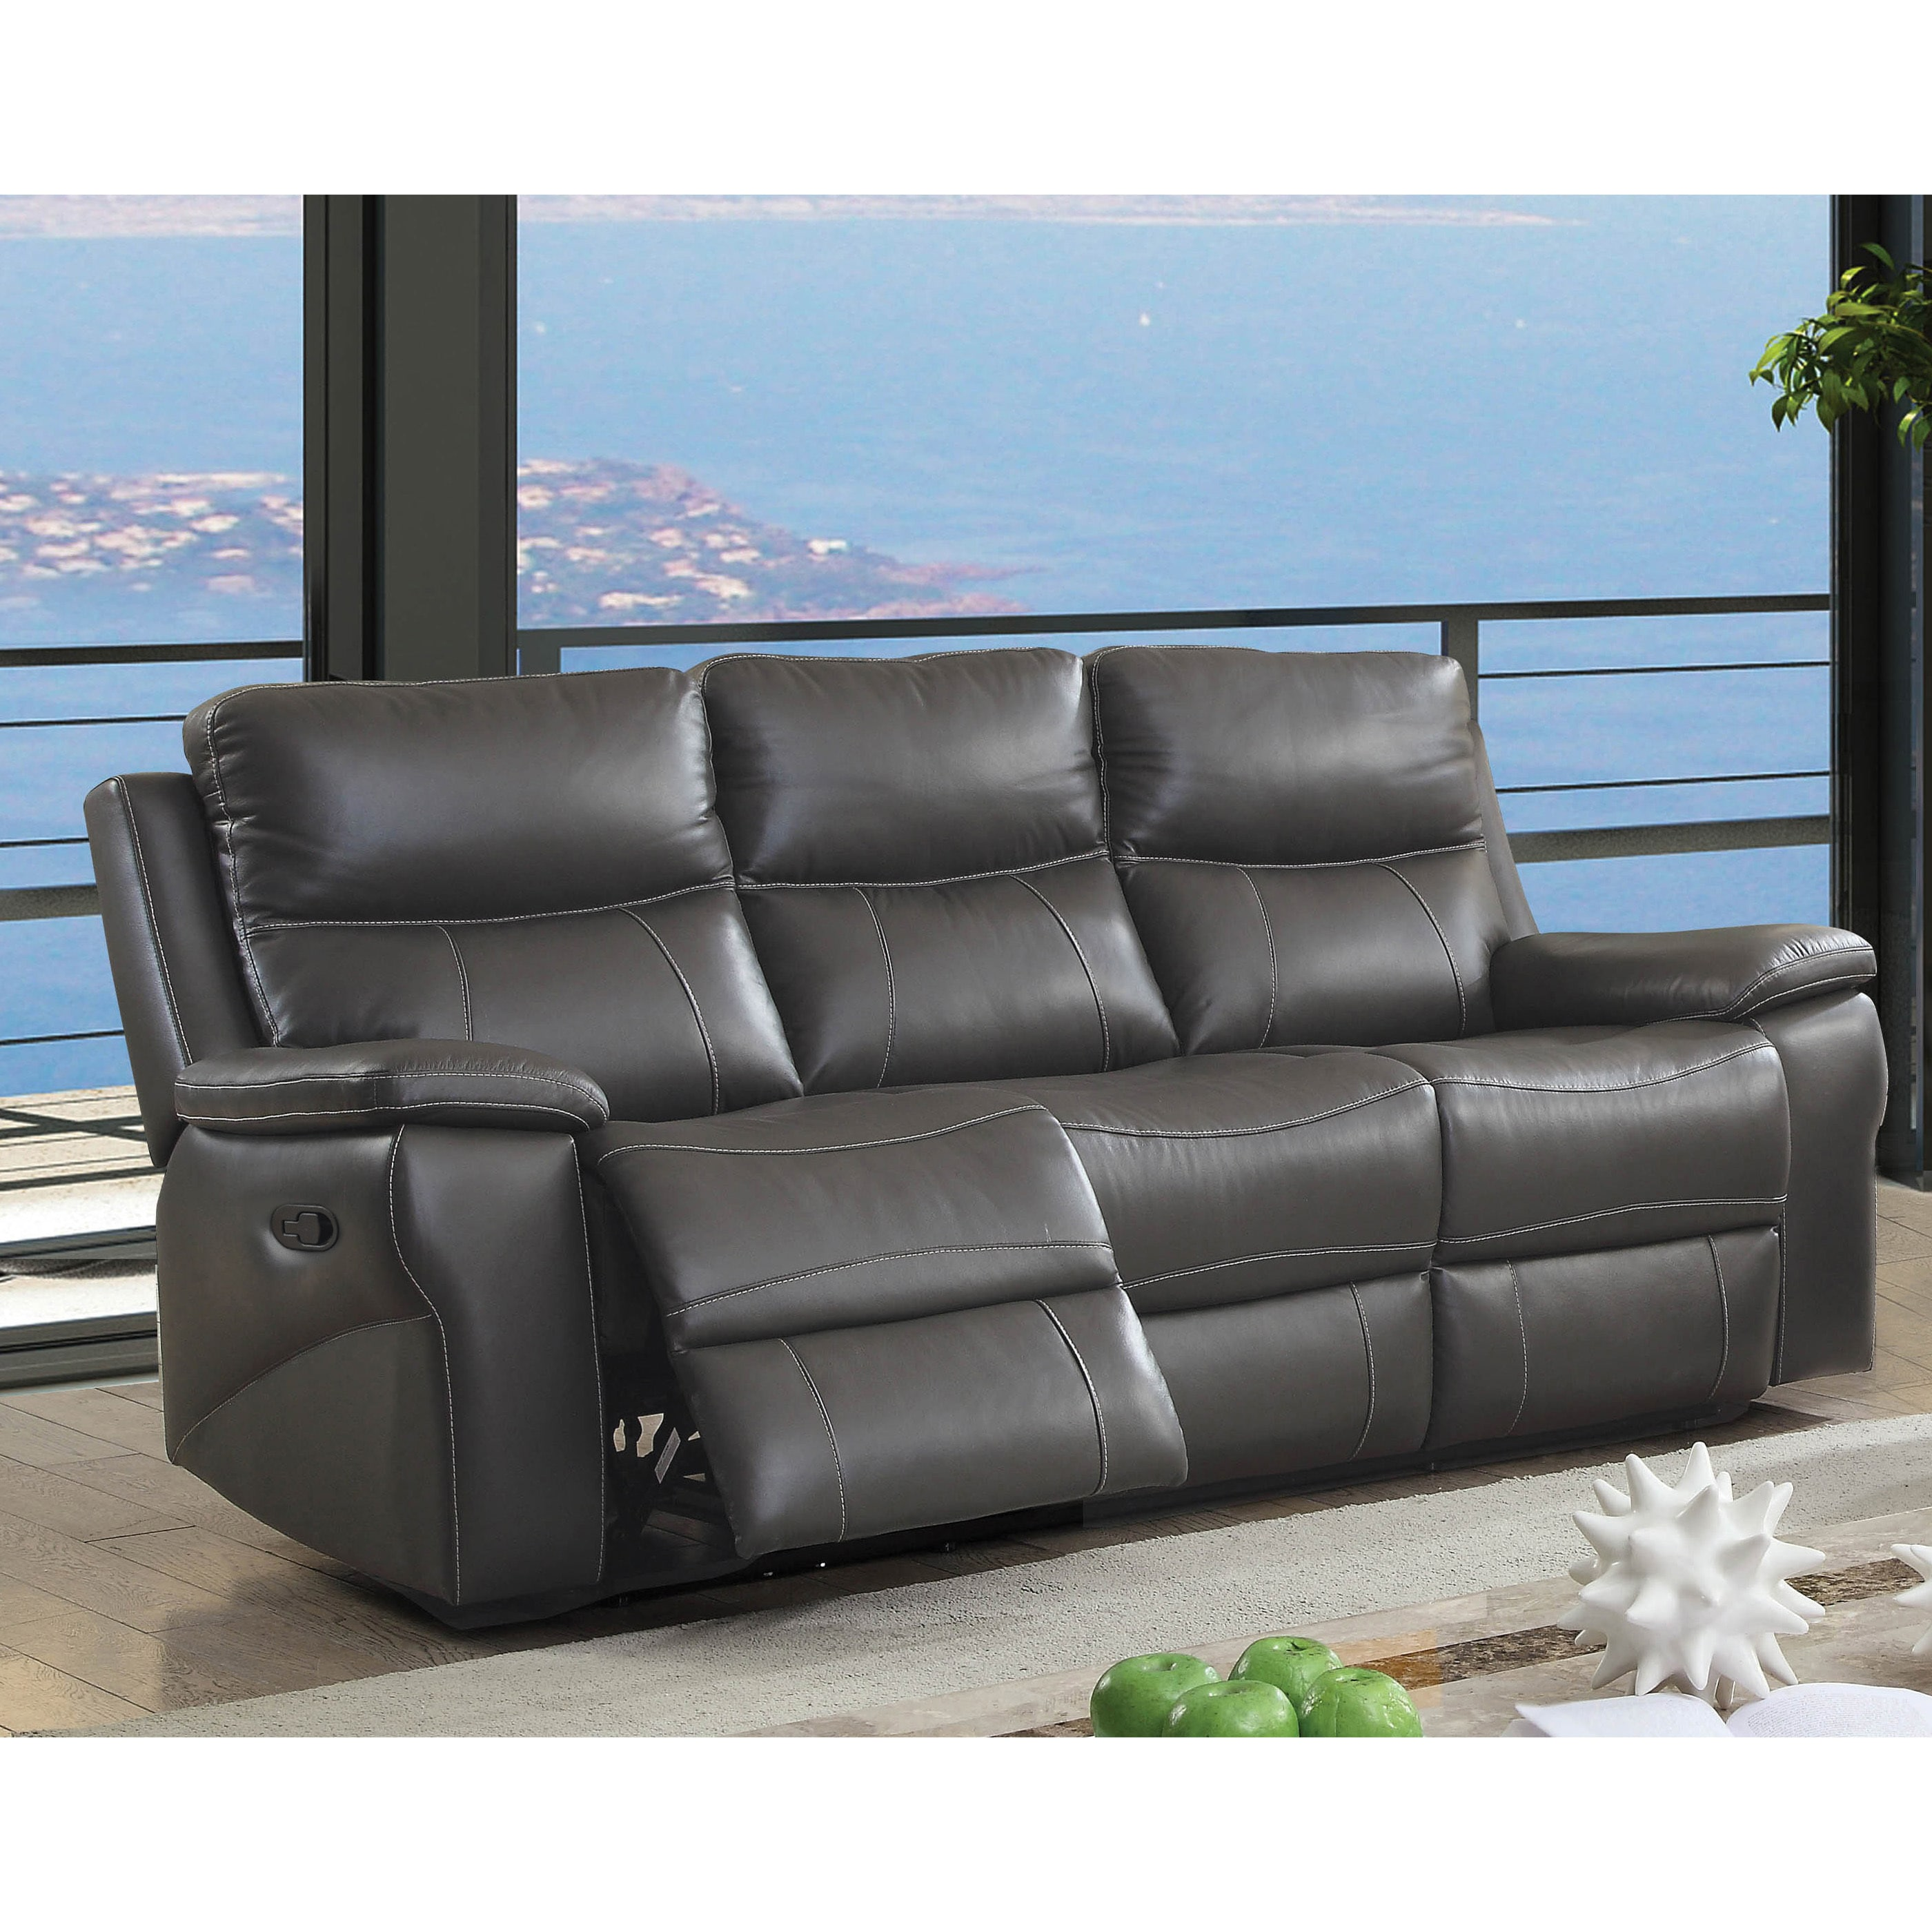 Furniture Of America Yail Transitional Grey Leather Reclining Sofa